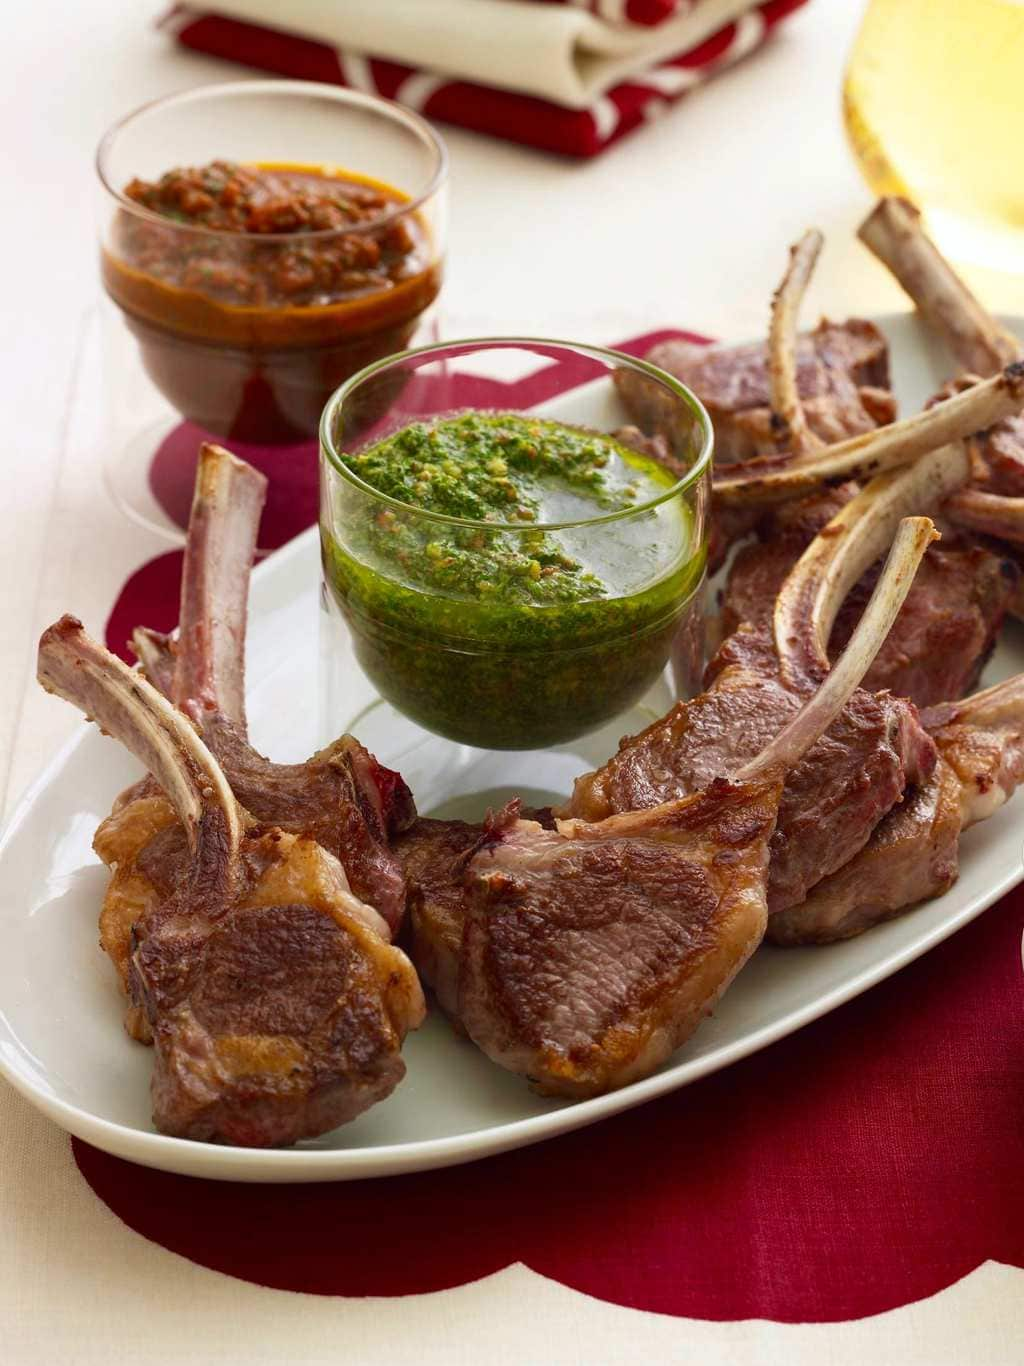 Baby lamb chops with red and green sauce on white oval platter, red linen